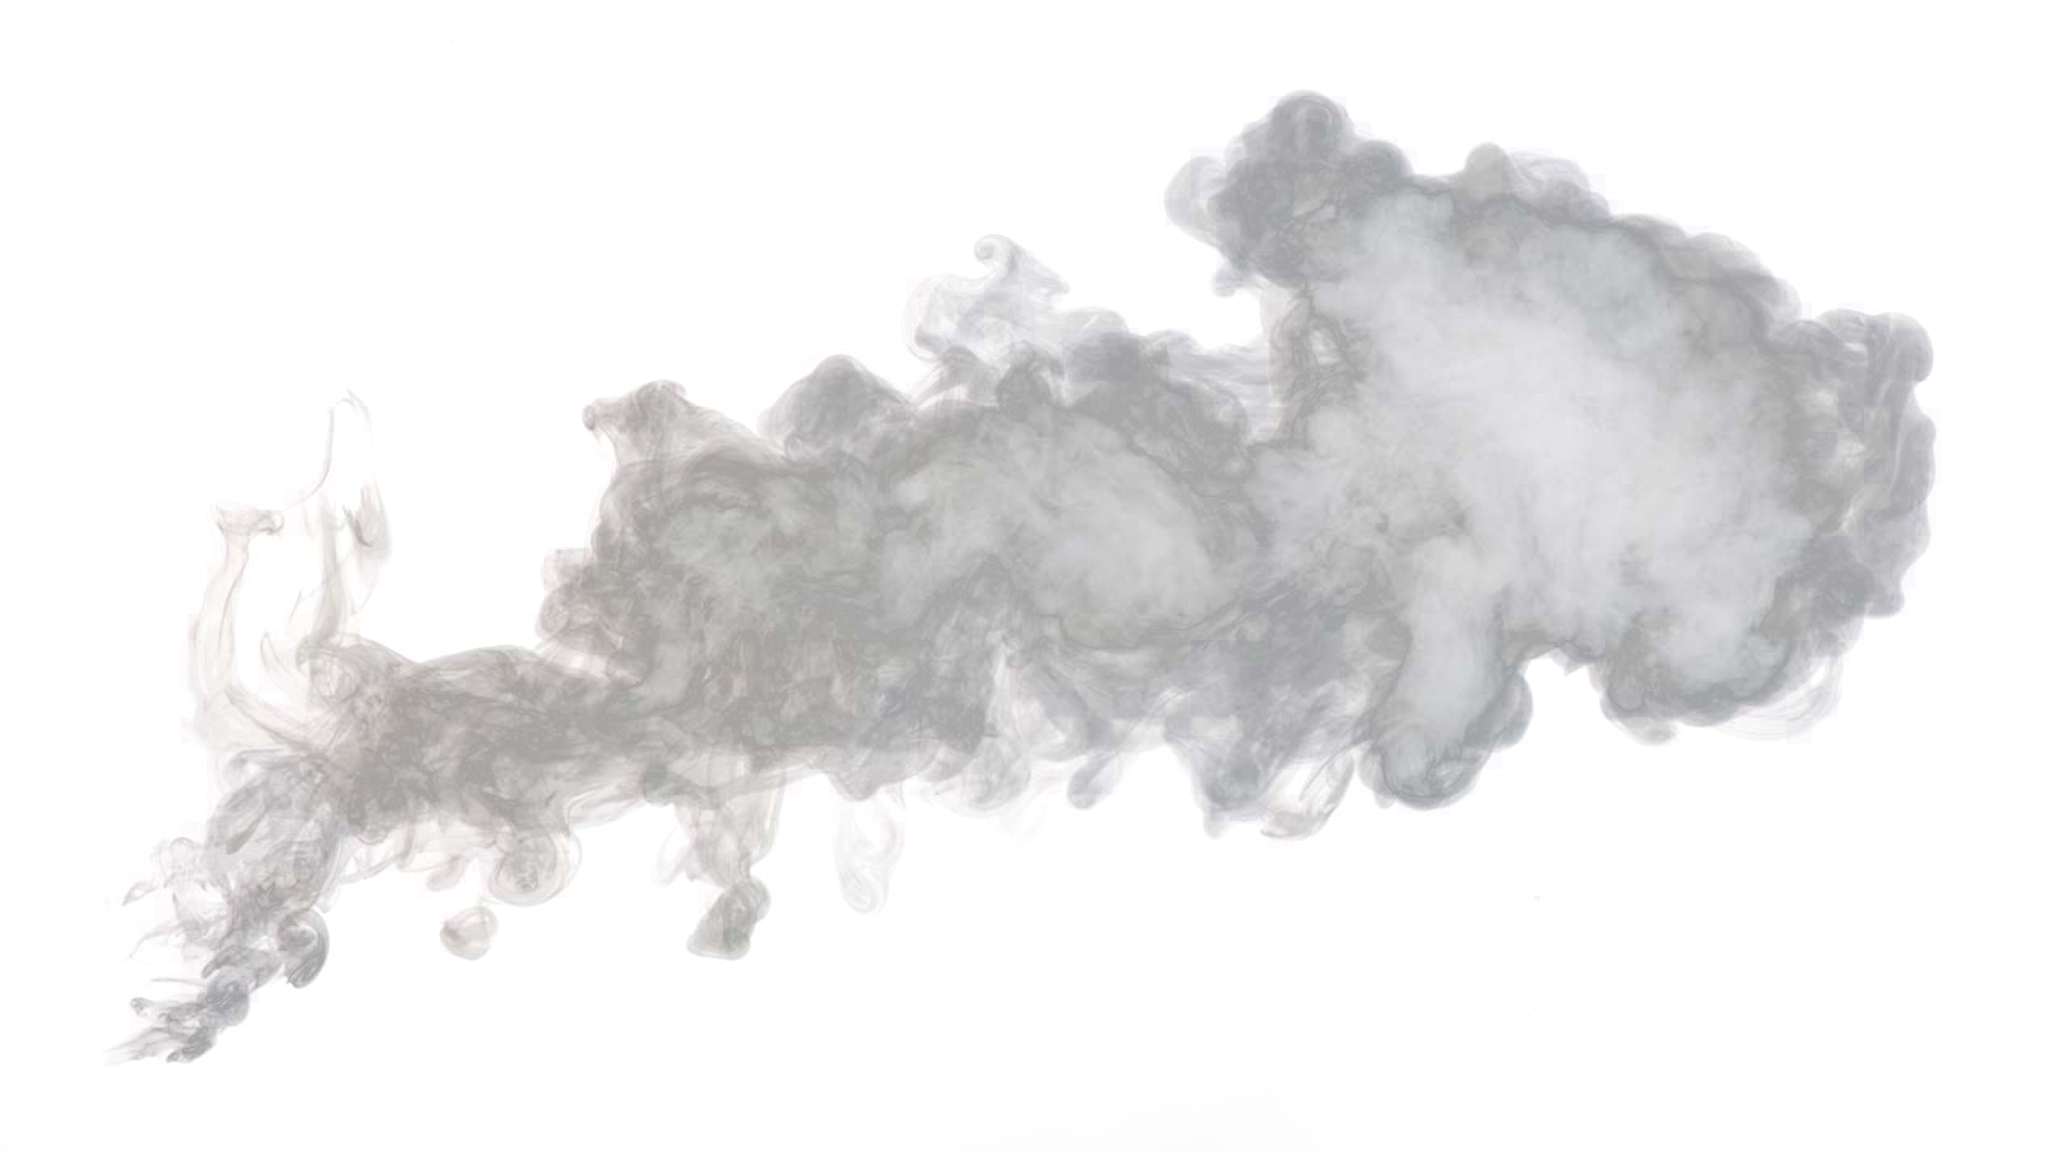 Cannon smoke png. Image free download picture